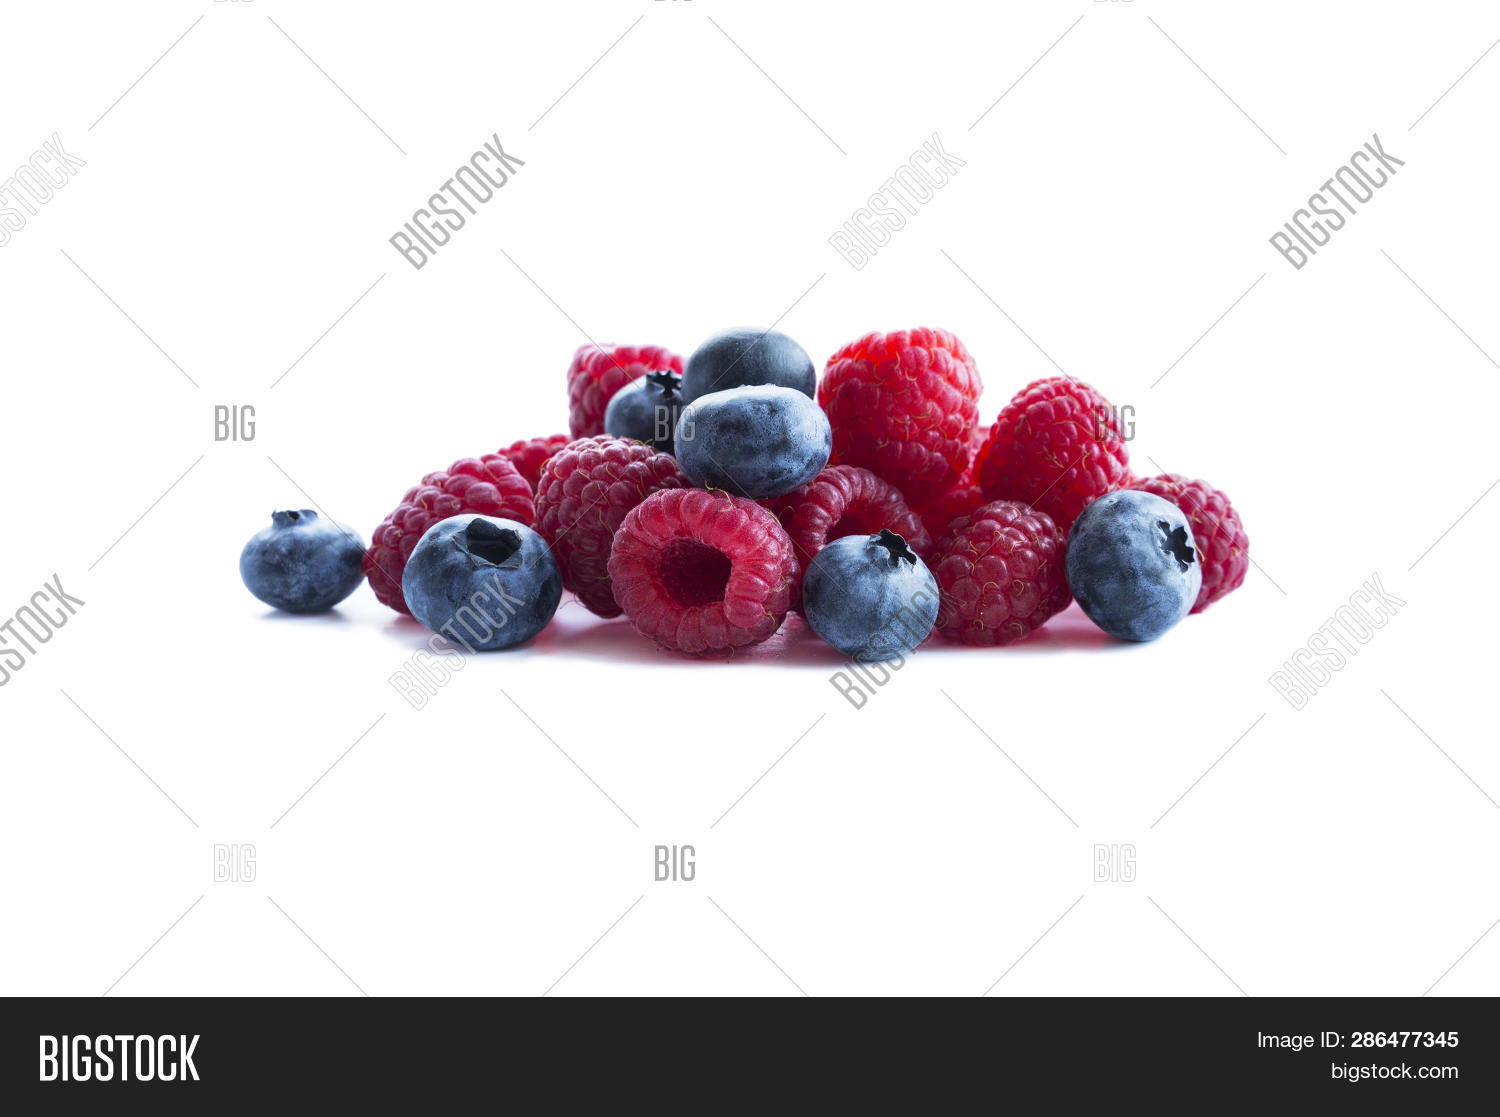 background,berry,blueberry,close,closeup,collection,color,colorful,copy,cut,cutout,delicious,dessert,different,food,fresh,fruit,garden,group,isolate,isolated,isolation,juicy,kitchen,market,mix,mixed,natural,nature,nutritious,on,plants,raspberry,ripe,space,studio,summer,sweet,tasty,text,up,variety,vegetarian,vitamin,white